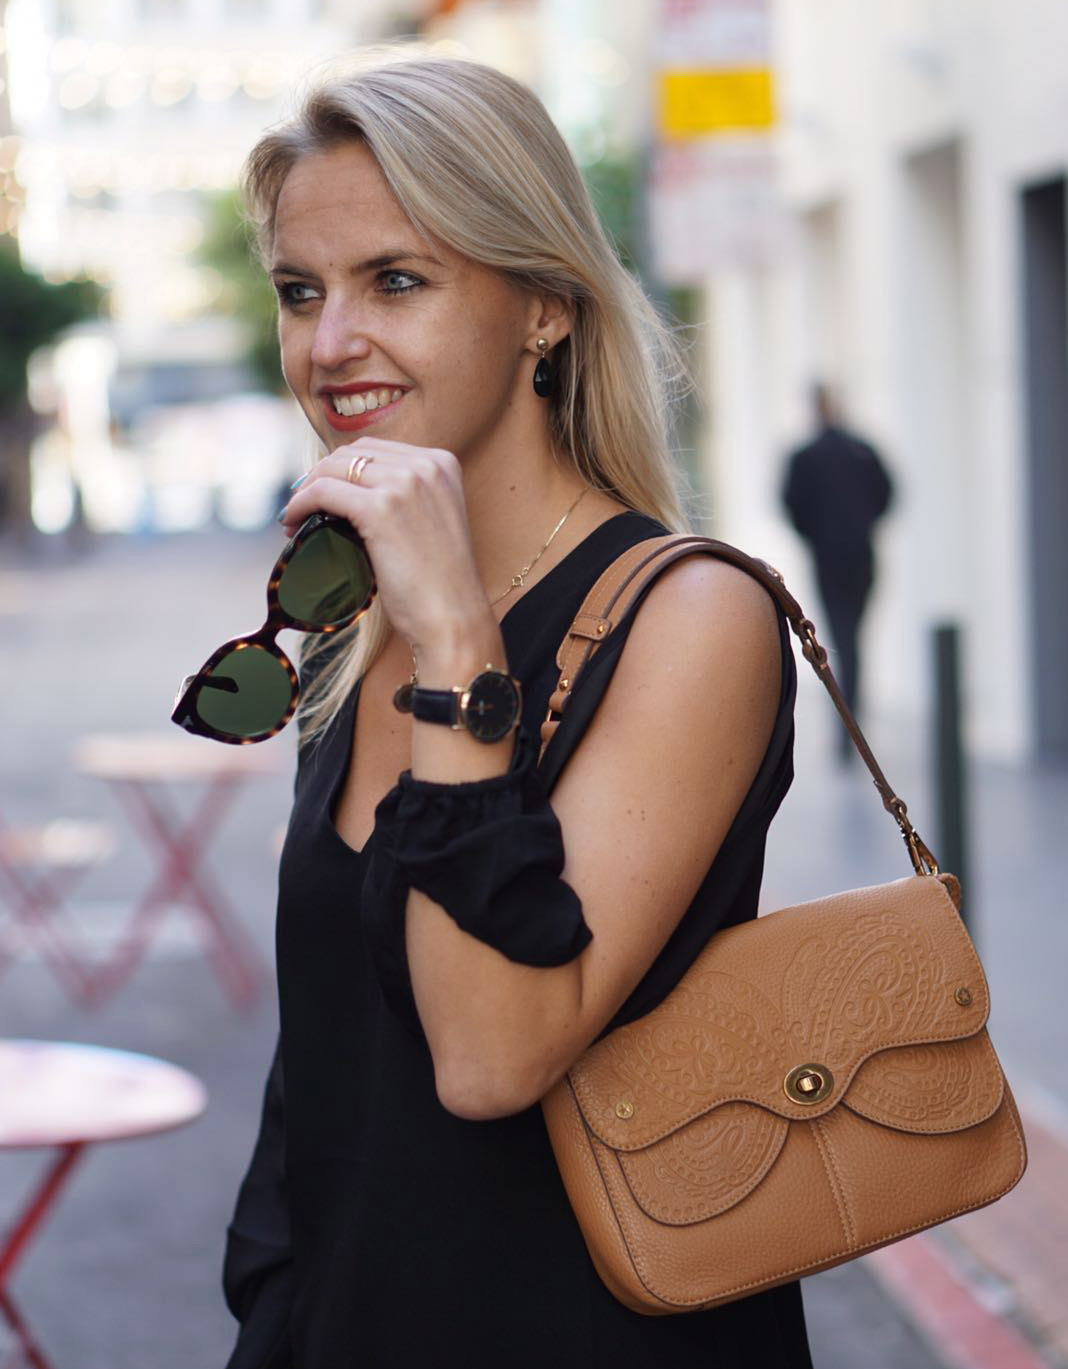 bag-at-you-fashion-blog-san-francisco-dress-in-black